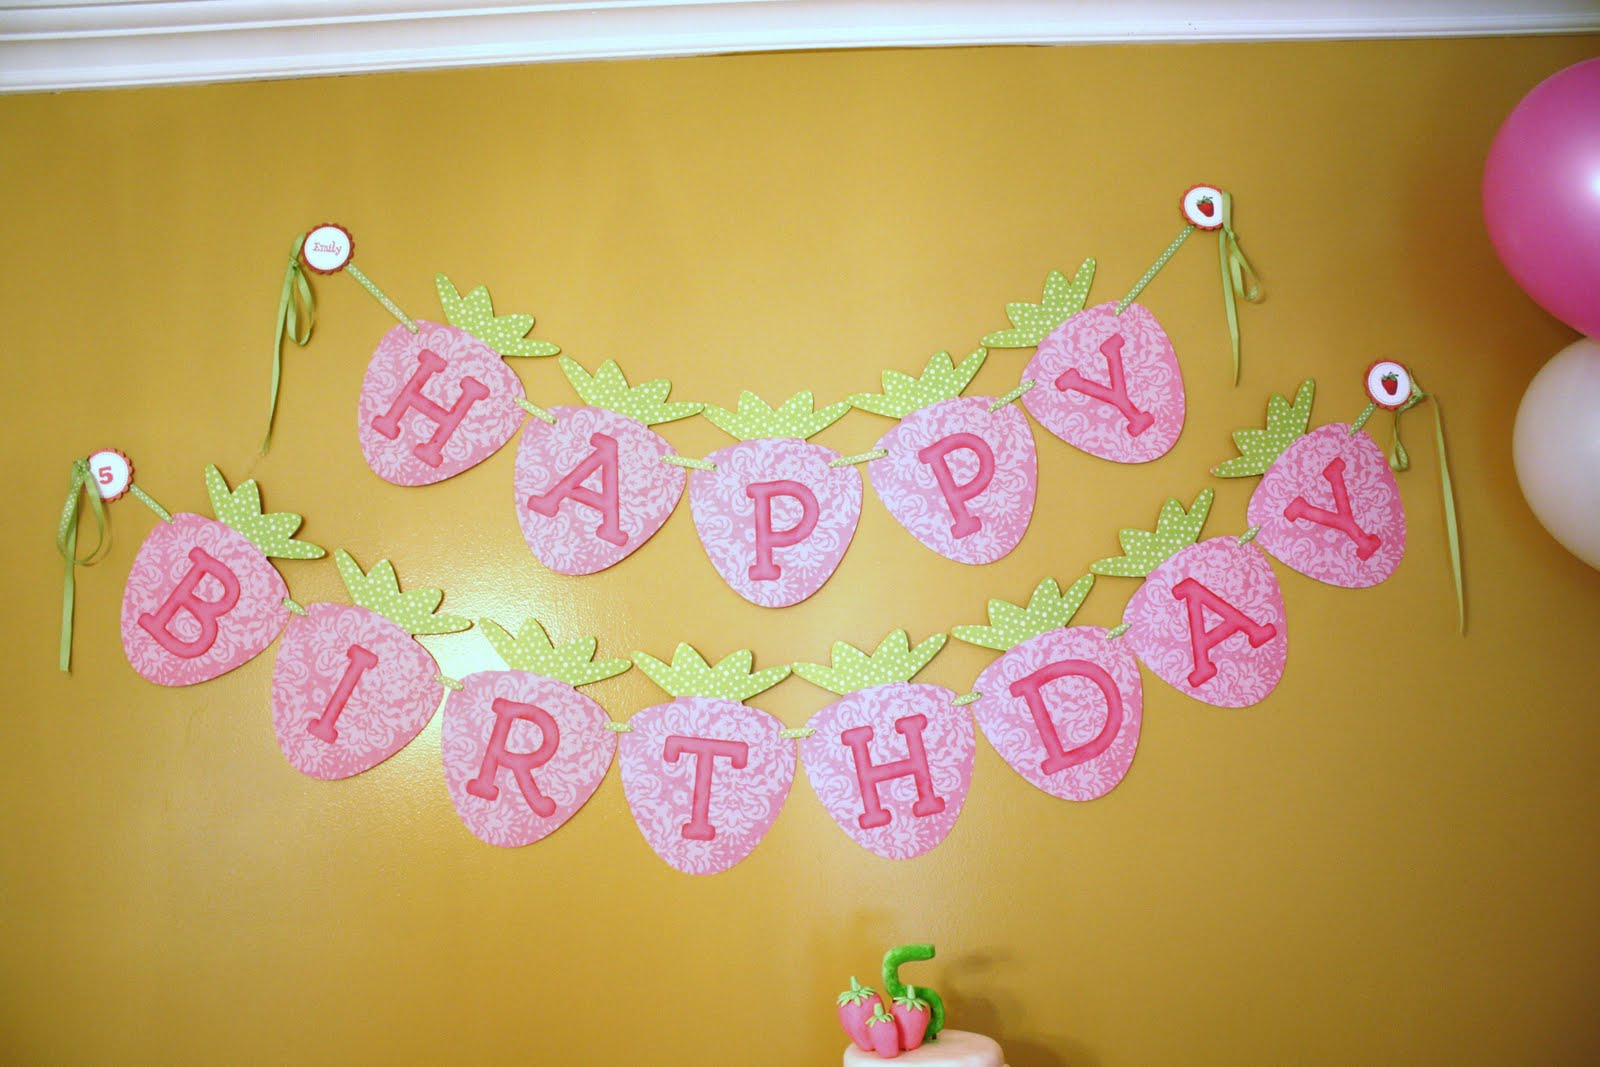 Birthday Decorations On Wall Image Inspiration of Cake and